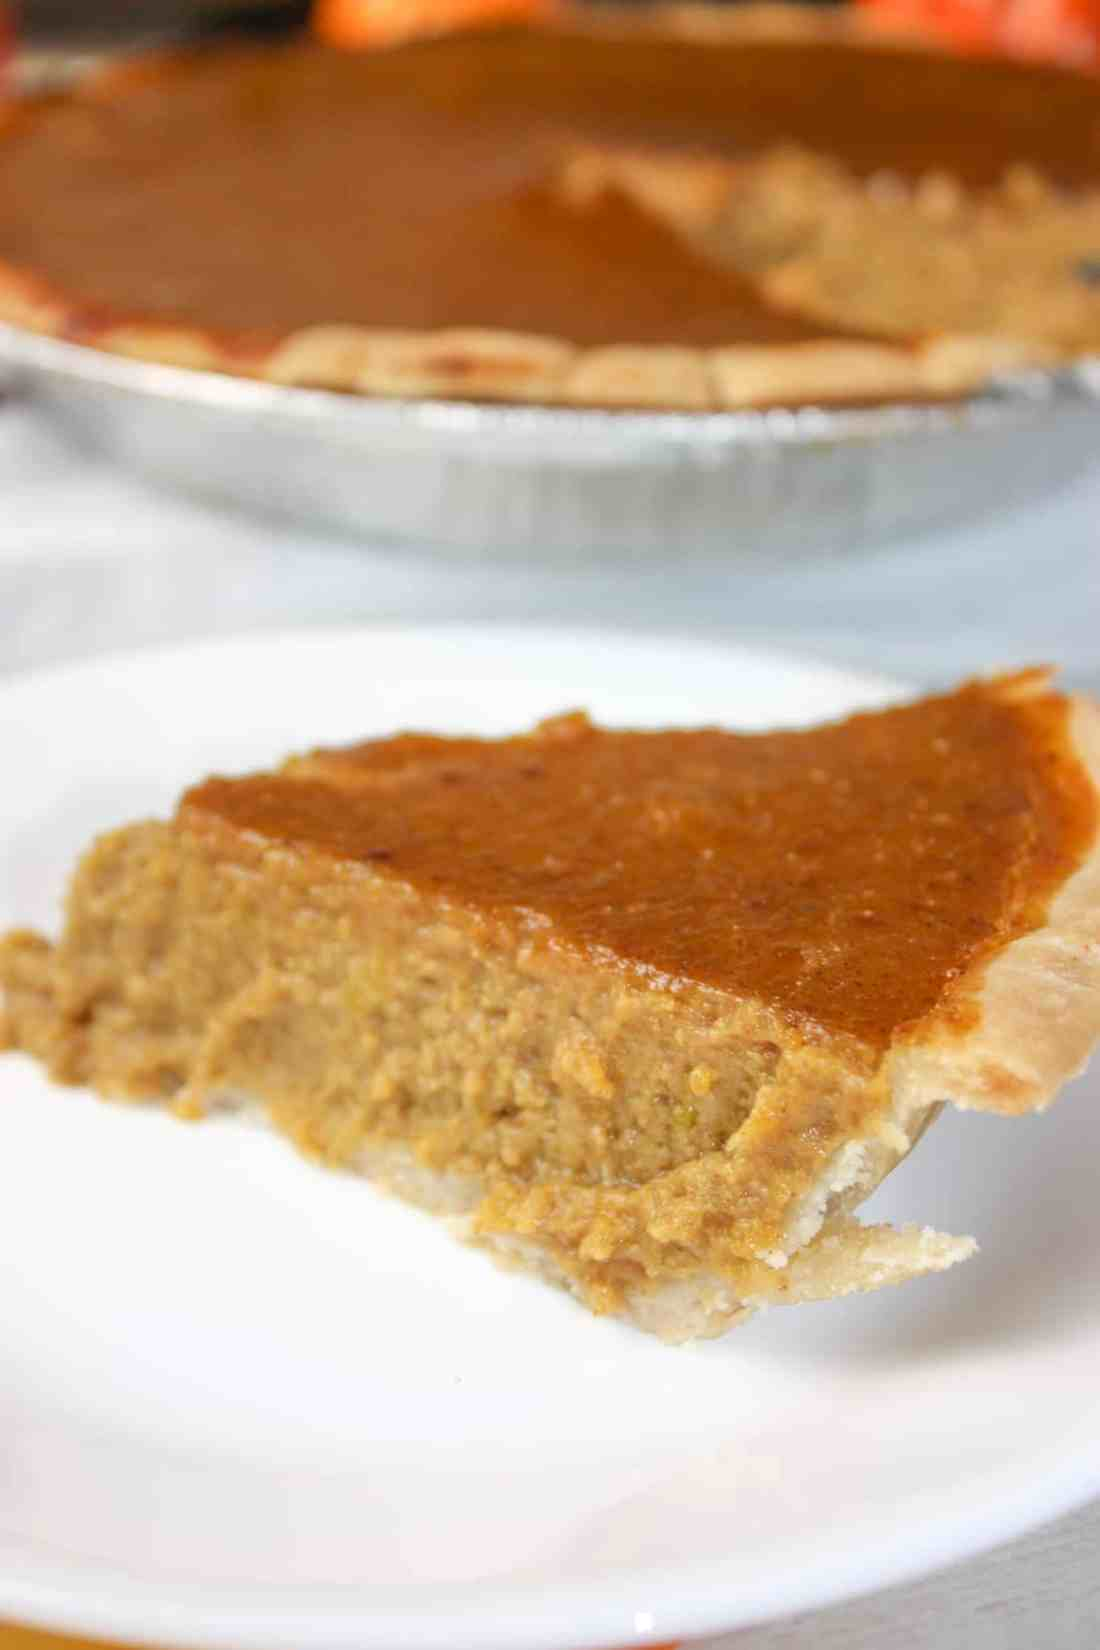 Thanksgiving would not be Thanksgiving without Pumpkin Pie.  This gluten free, dairy free version makes it possible for everyone to enjoy this traditional holiday dessert!